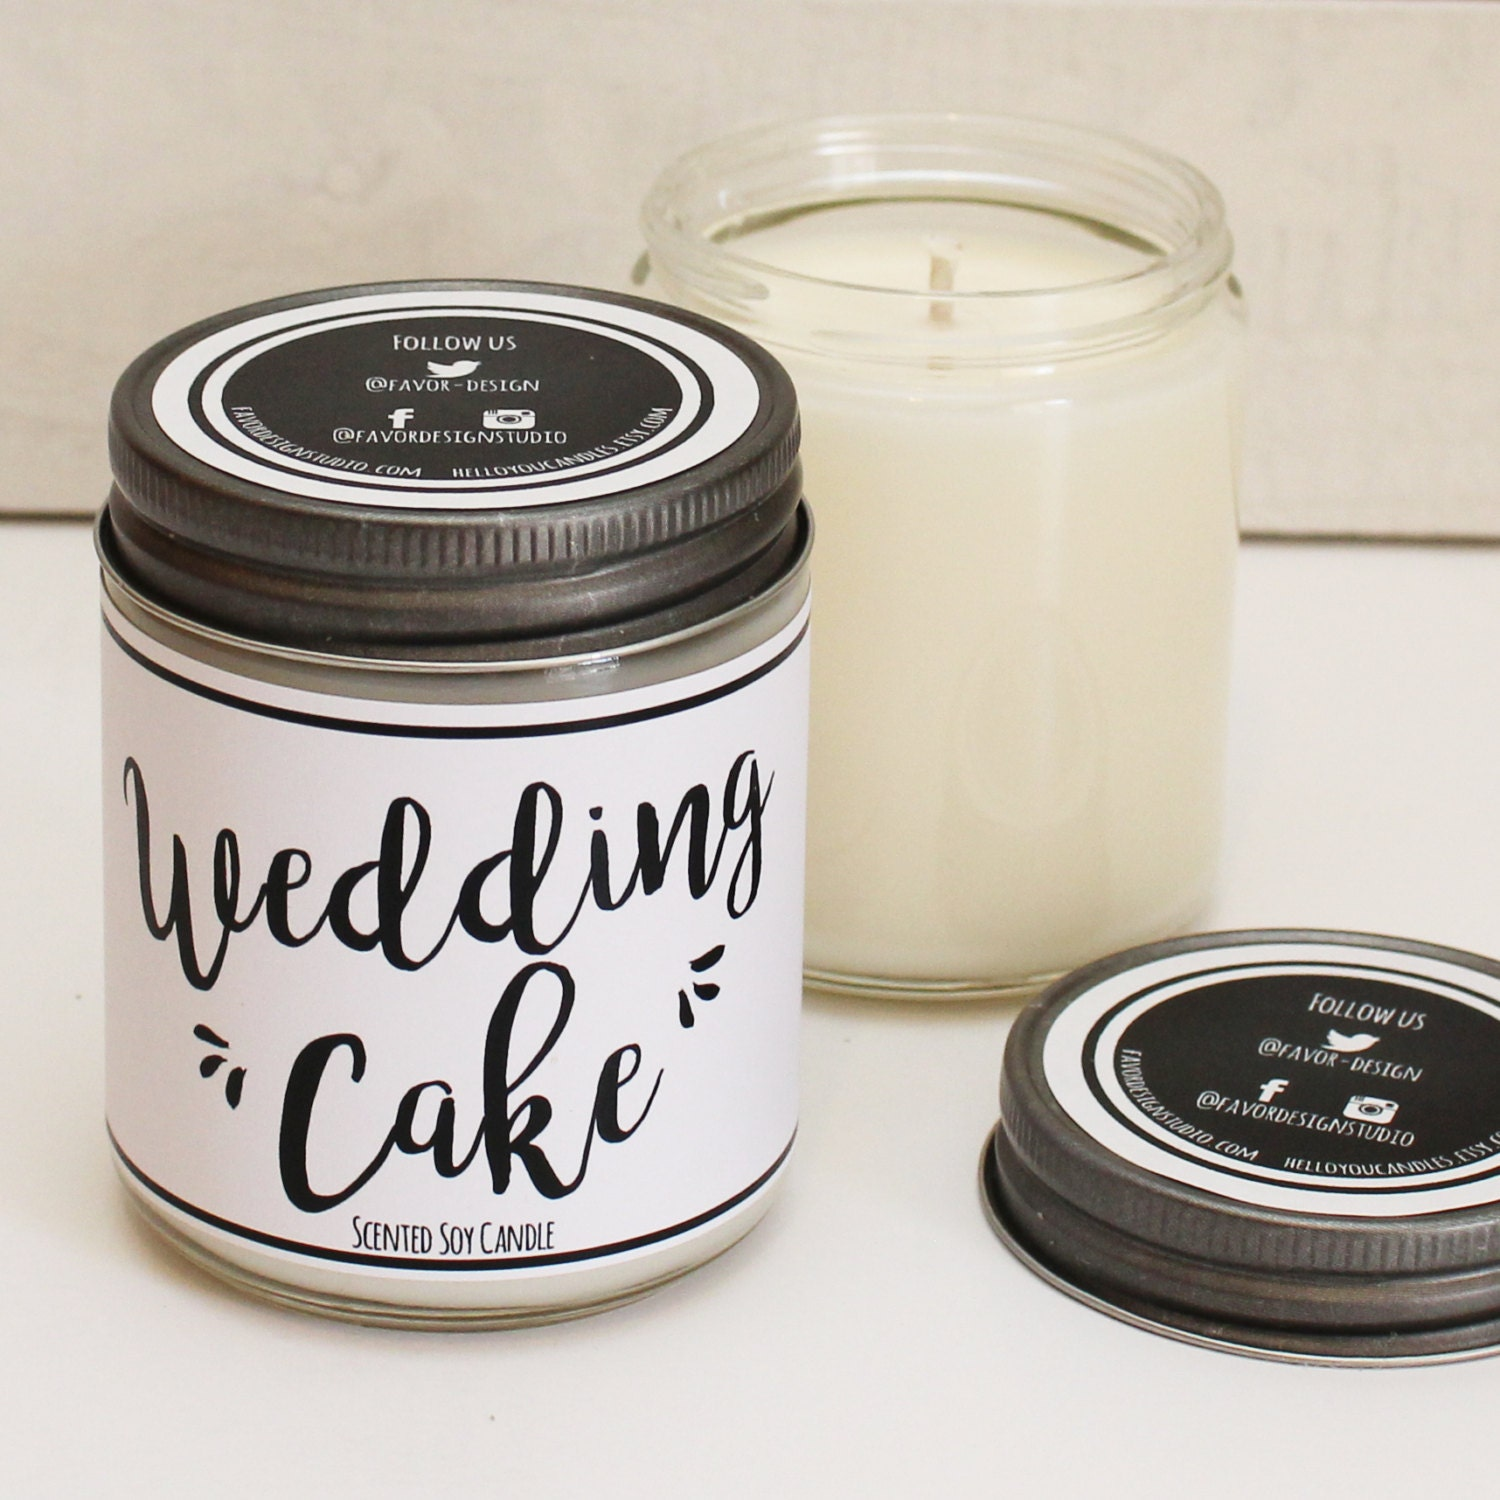 wedding cake scented candles wedding cake scented candle 8 oz candle gift unique 24032